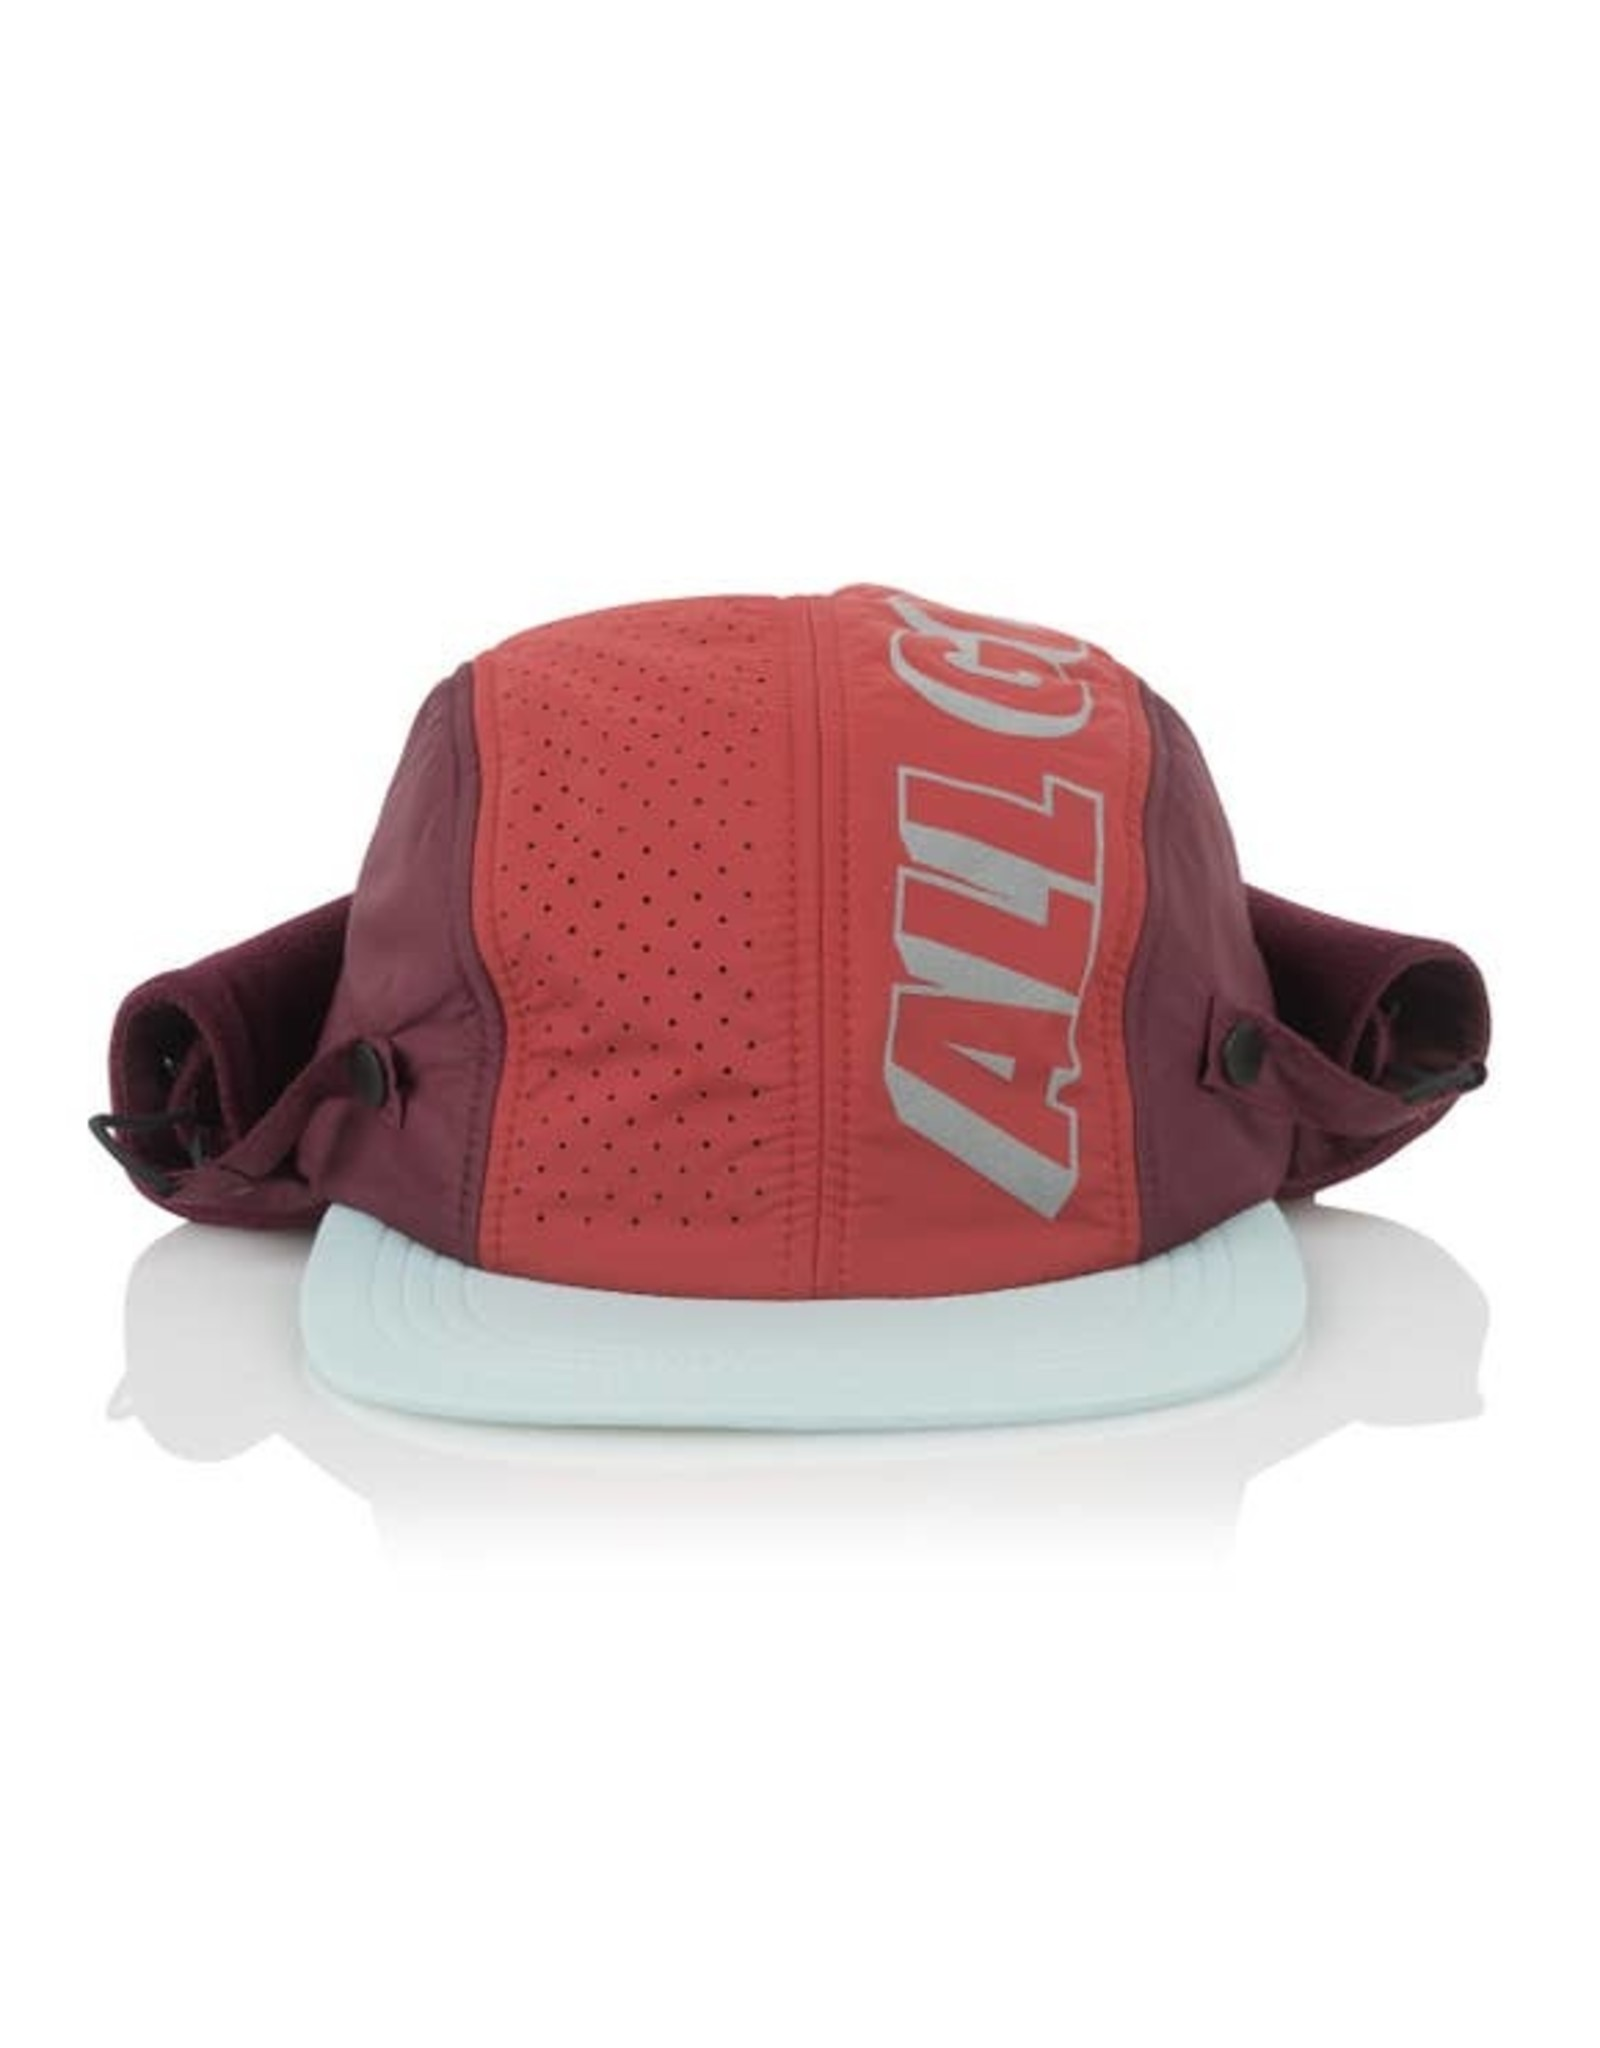 All Good Embers Cap- Fly Camper-  S/M